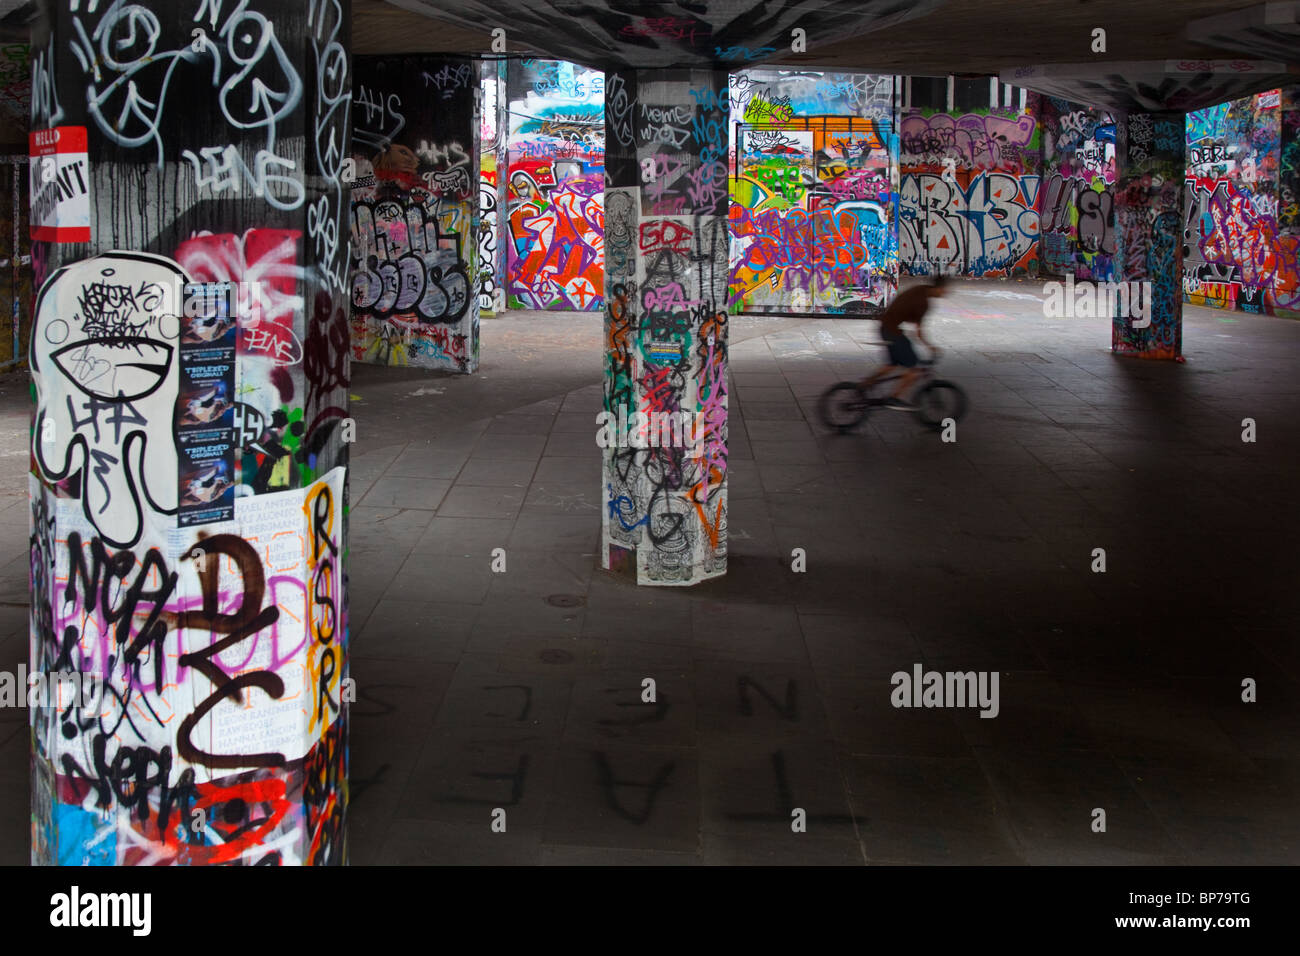 Skate Board Park and graffiti on the South-bank central London - Stock Image